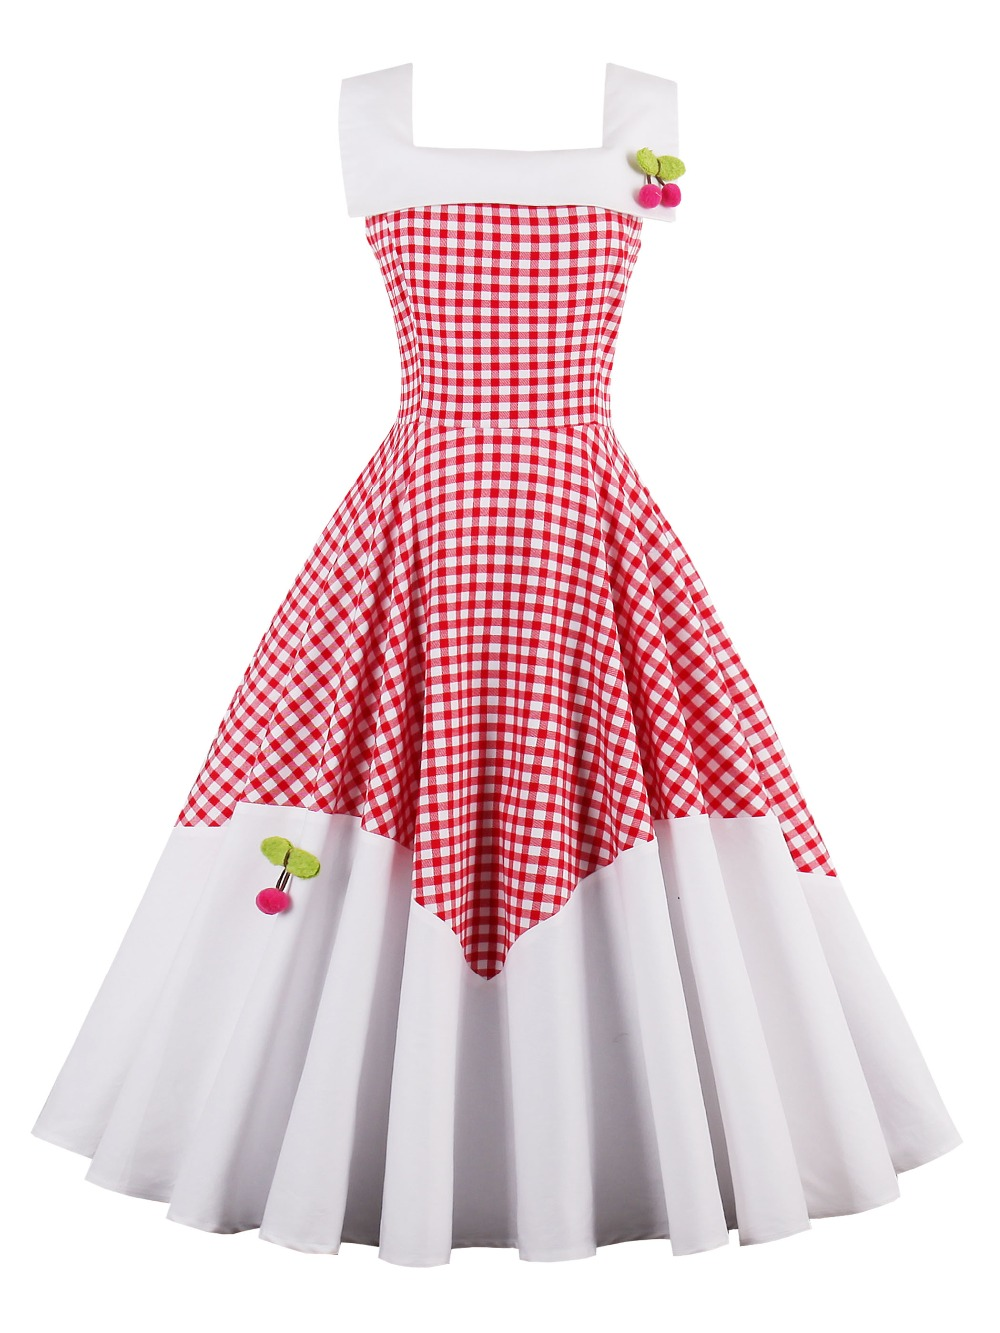 2018 summer dress Female Square Collar White Red Plaid Sleeveless Dresses A-Line Female Appliquest Girls Dress